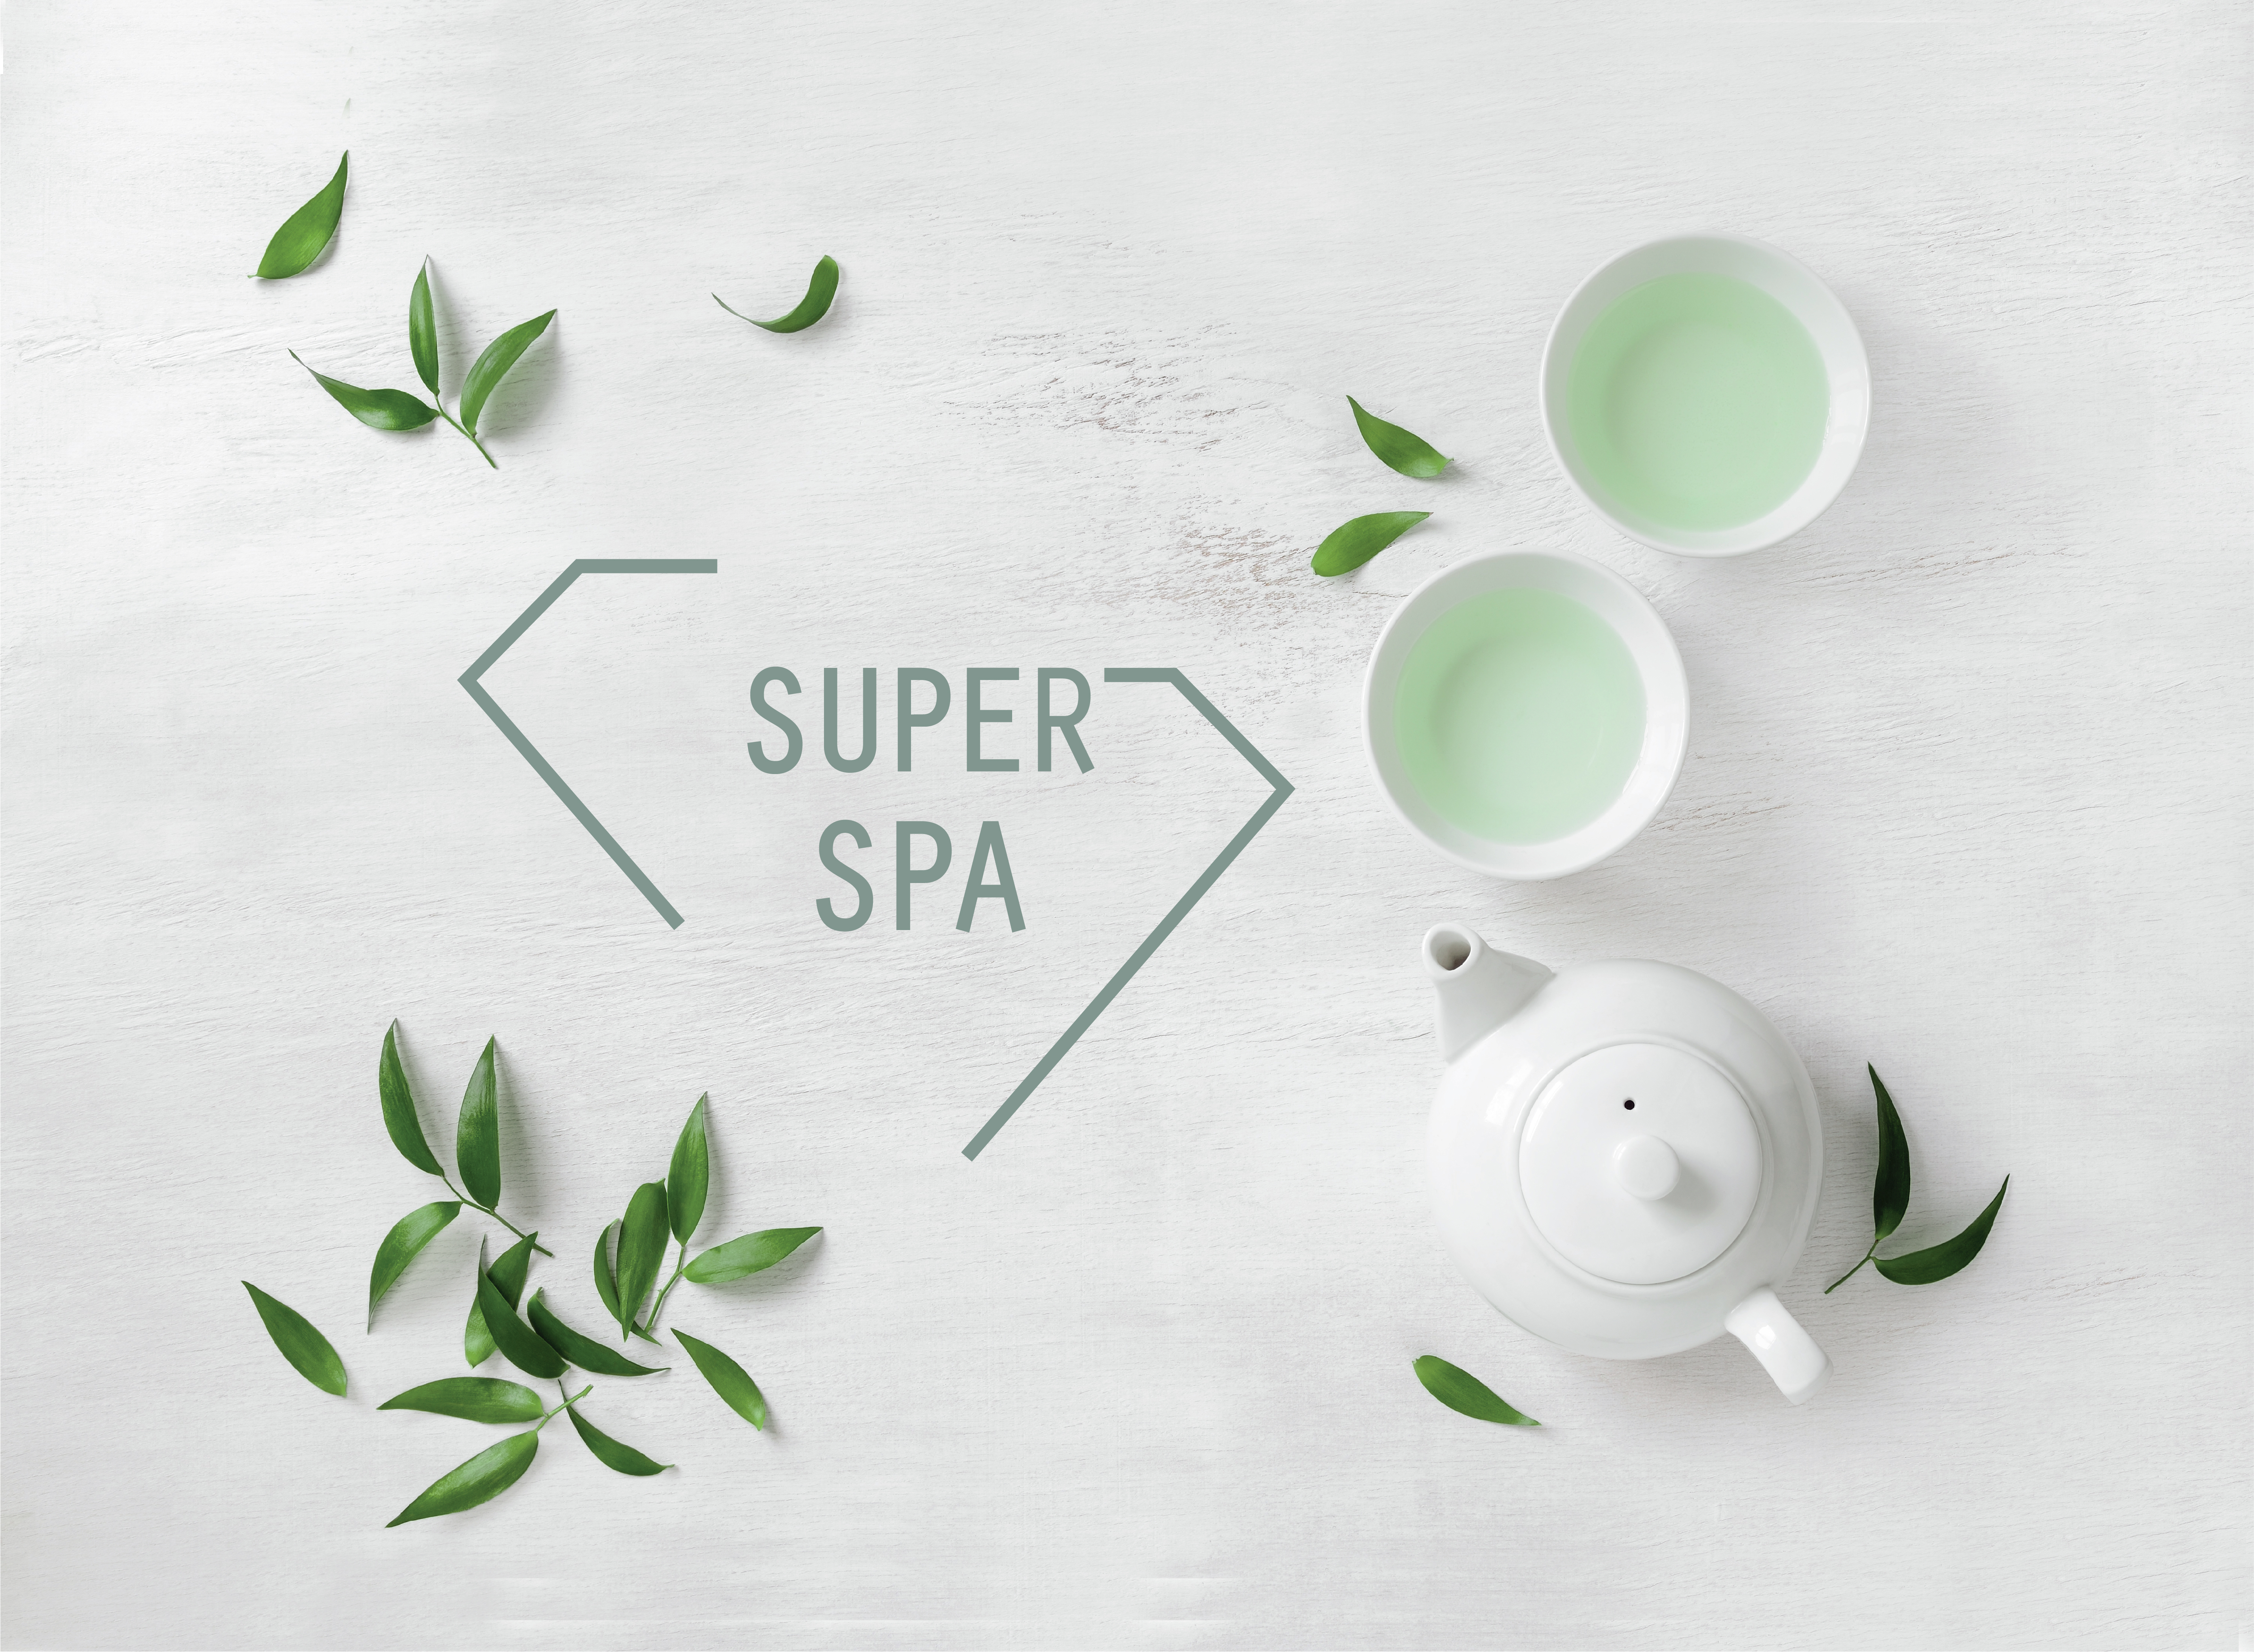 THE SUPER SPA